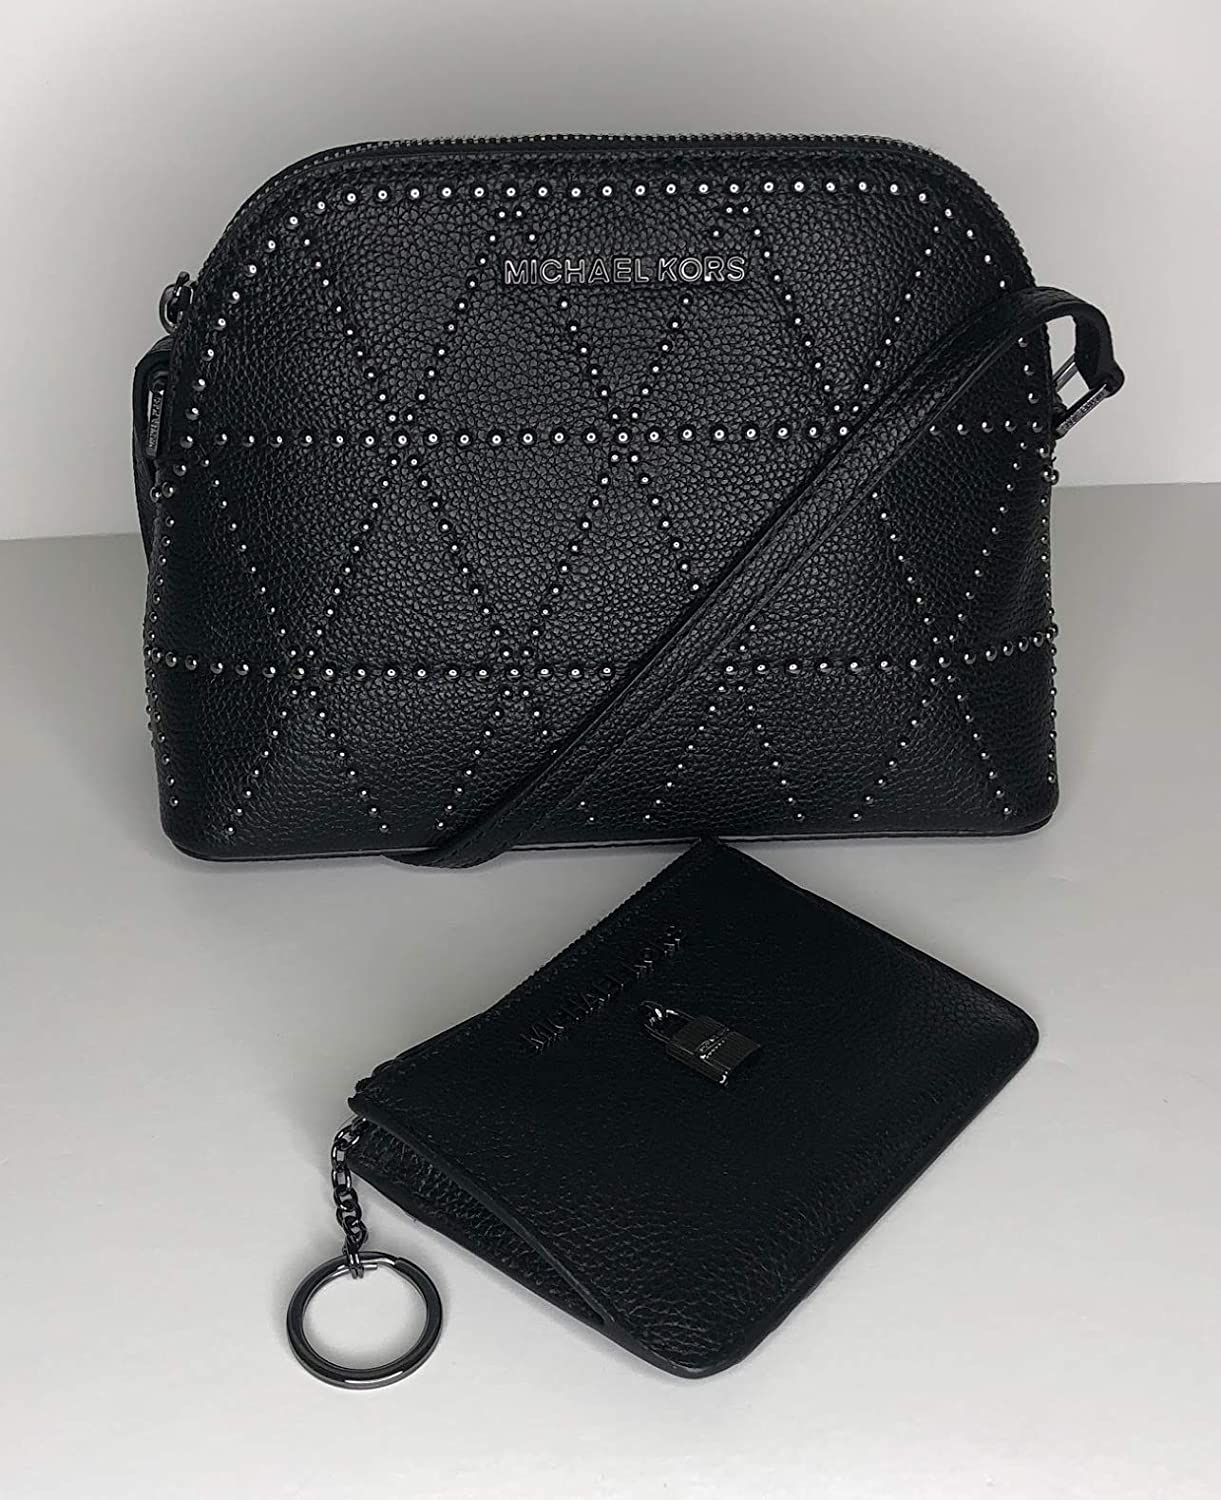 9d6043935557 MICHAEL Michael Kors Adele MD Dome Crossbody bundled with Michael Kors Adele  Small TZ Coinpouch with ID Wallet (Black Studded)  Handbags  Amazon.com